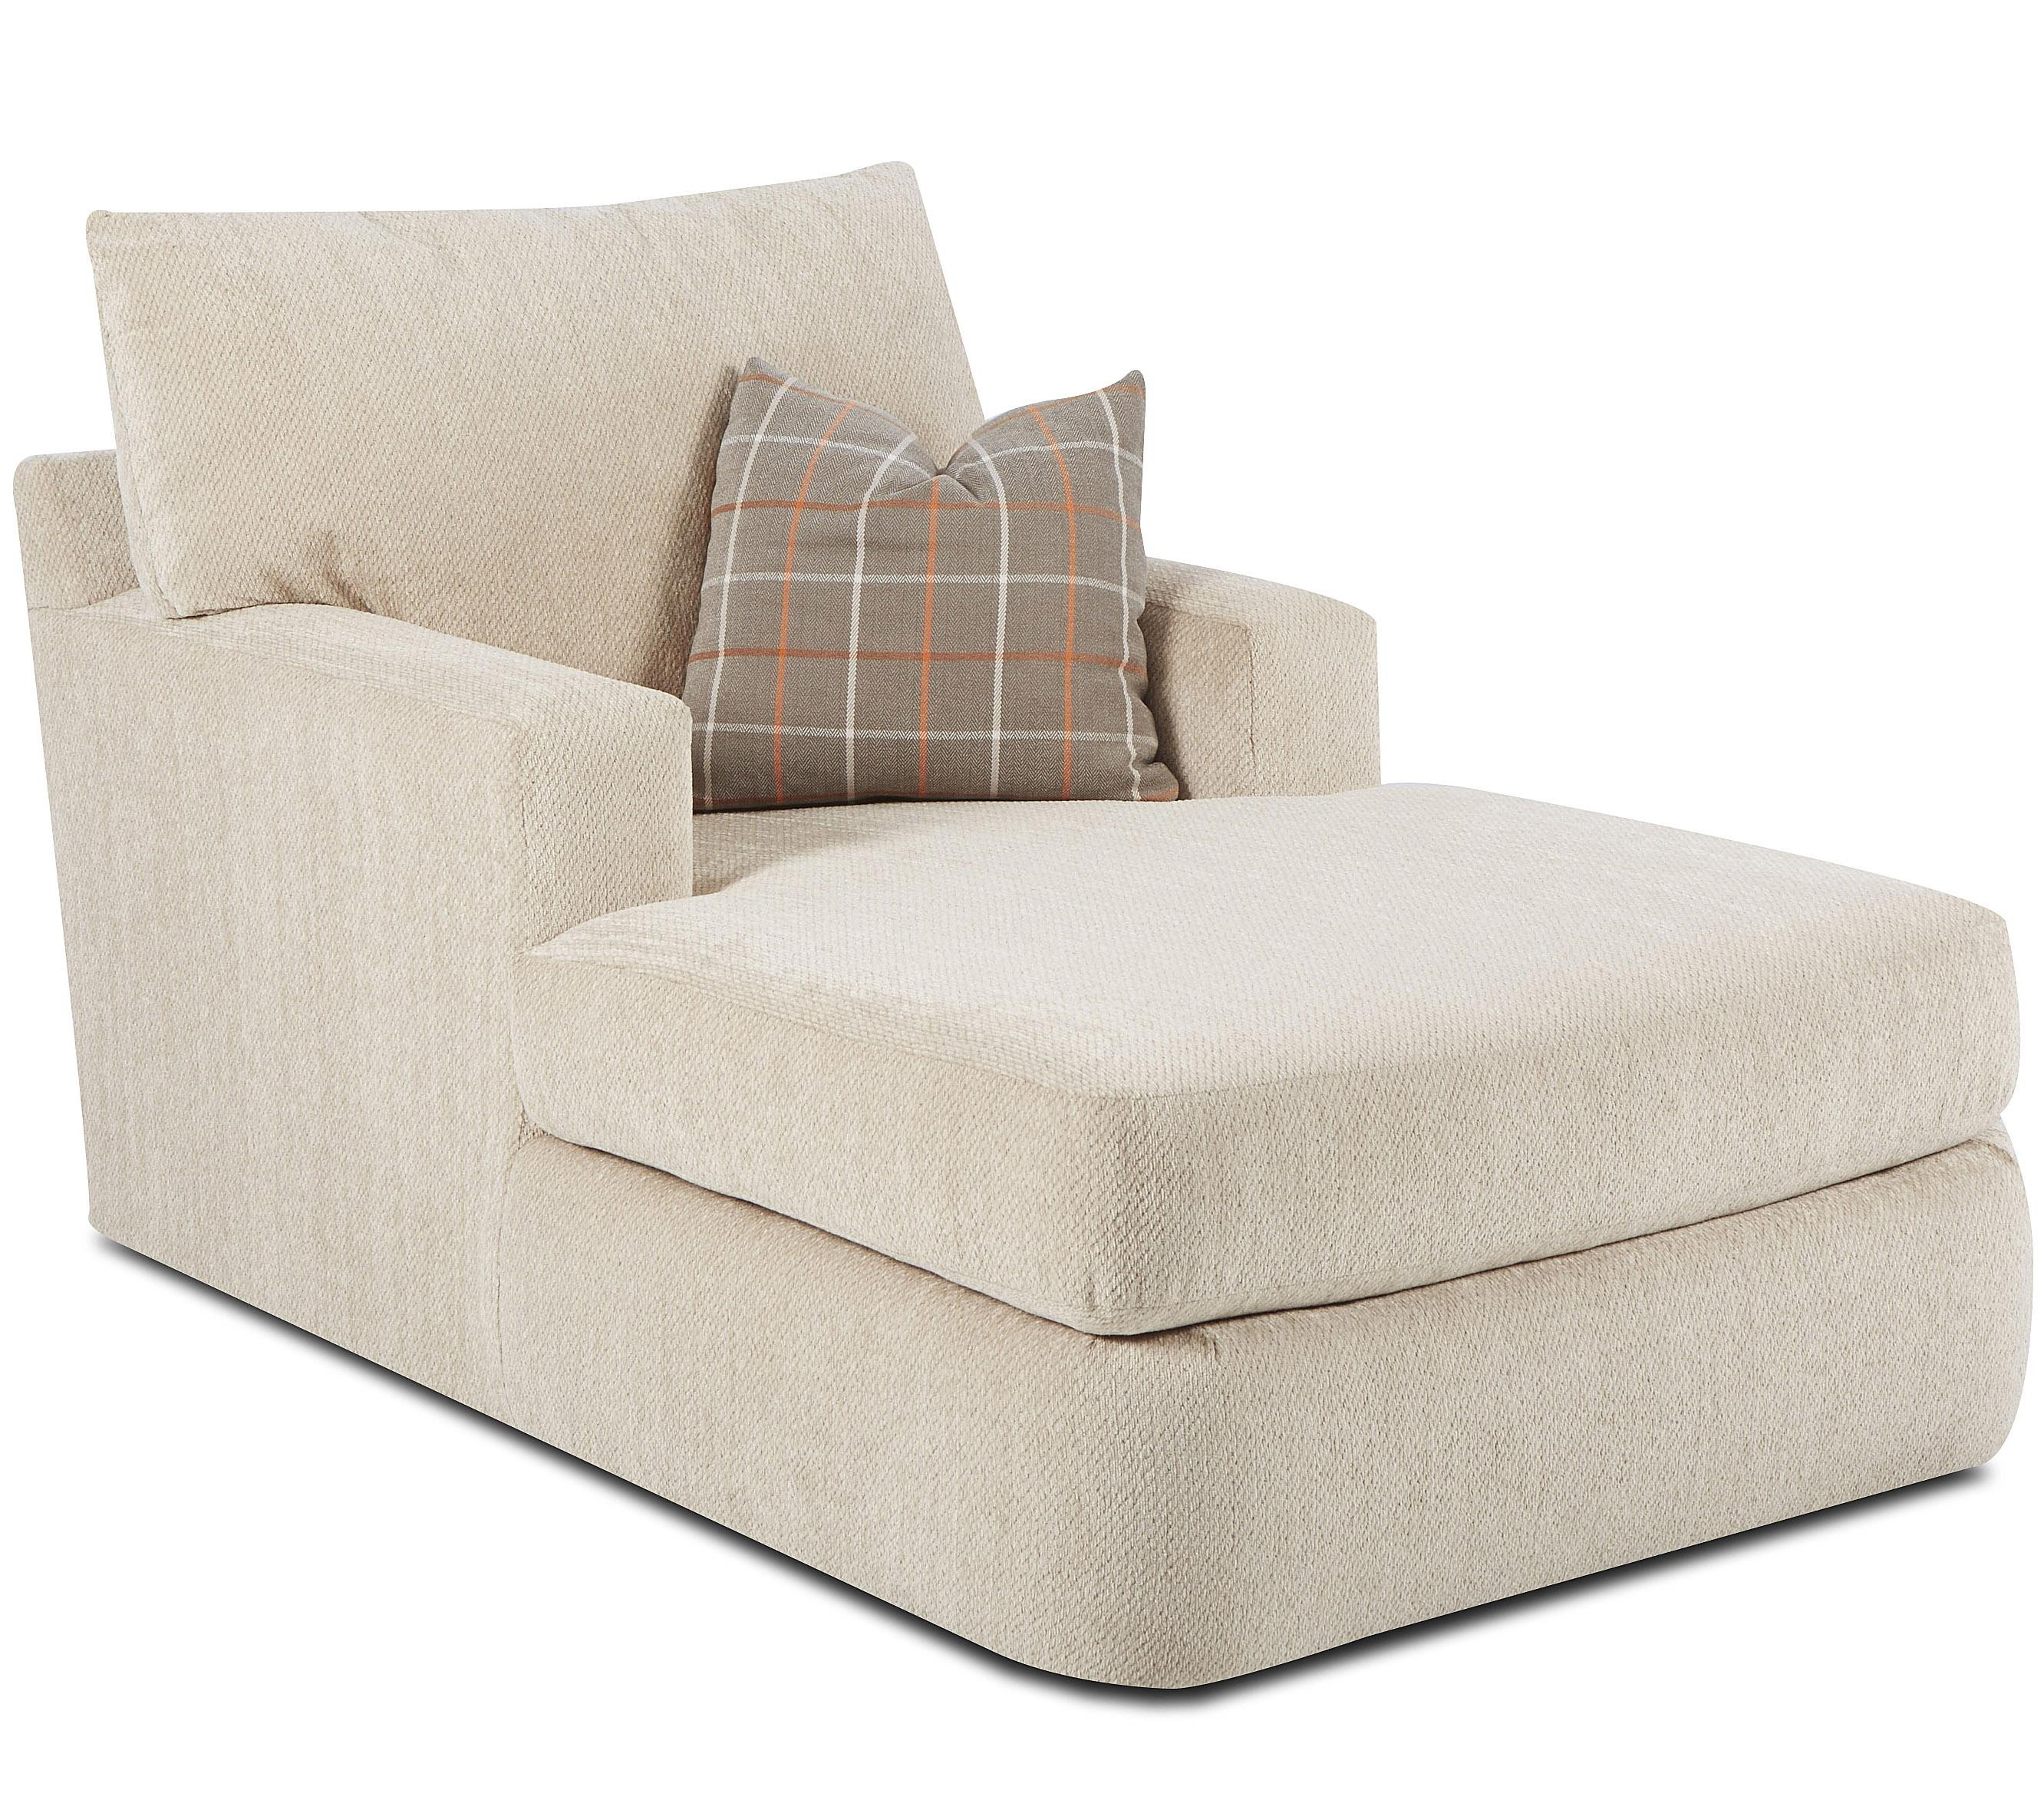 Klaussner Oliver Contemporary Chaise   Item Number: K41400 CHASE   Jessie  Oatmeal